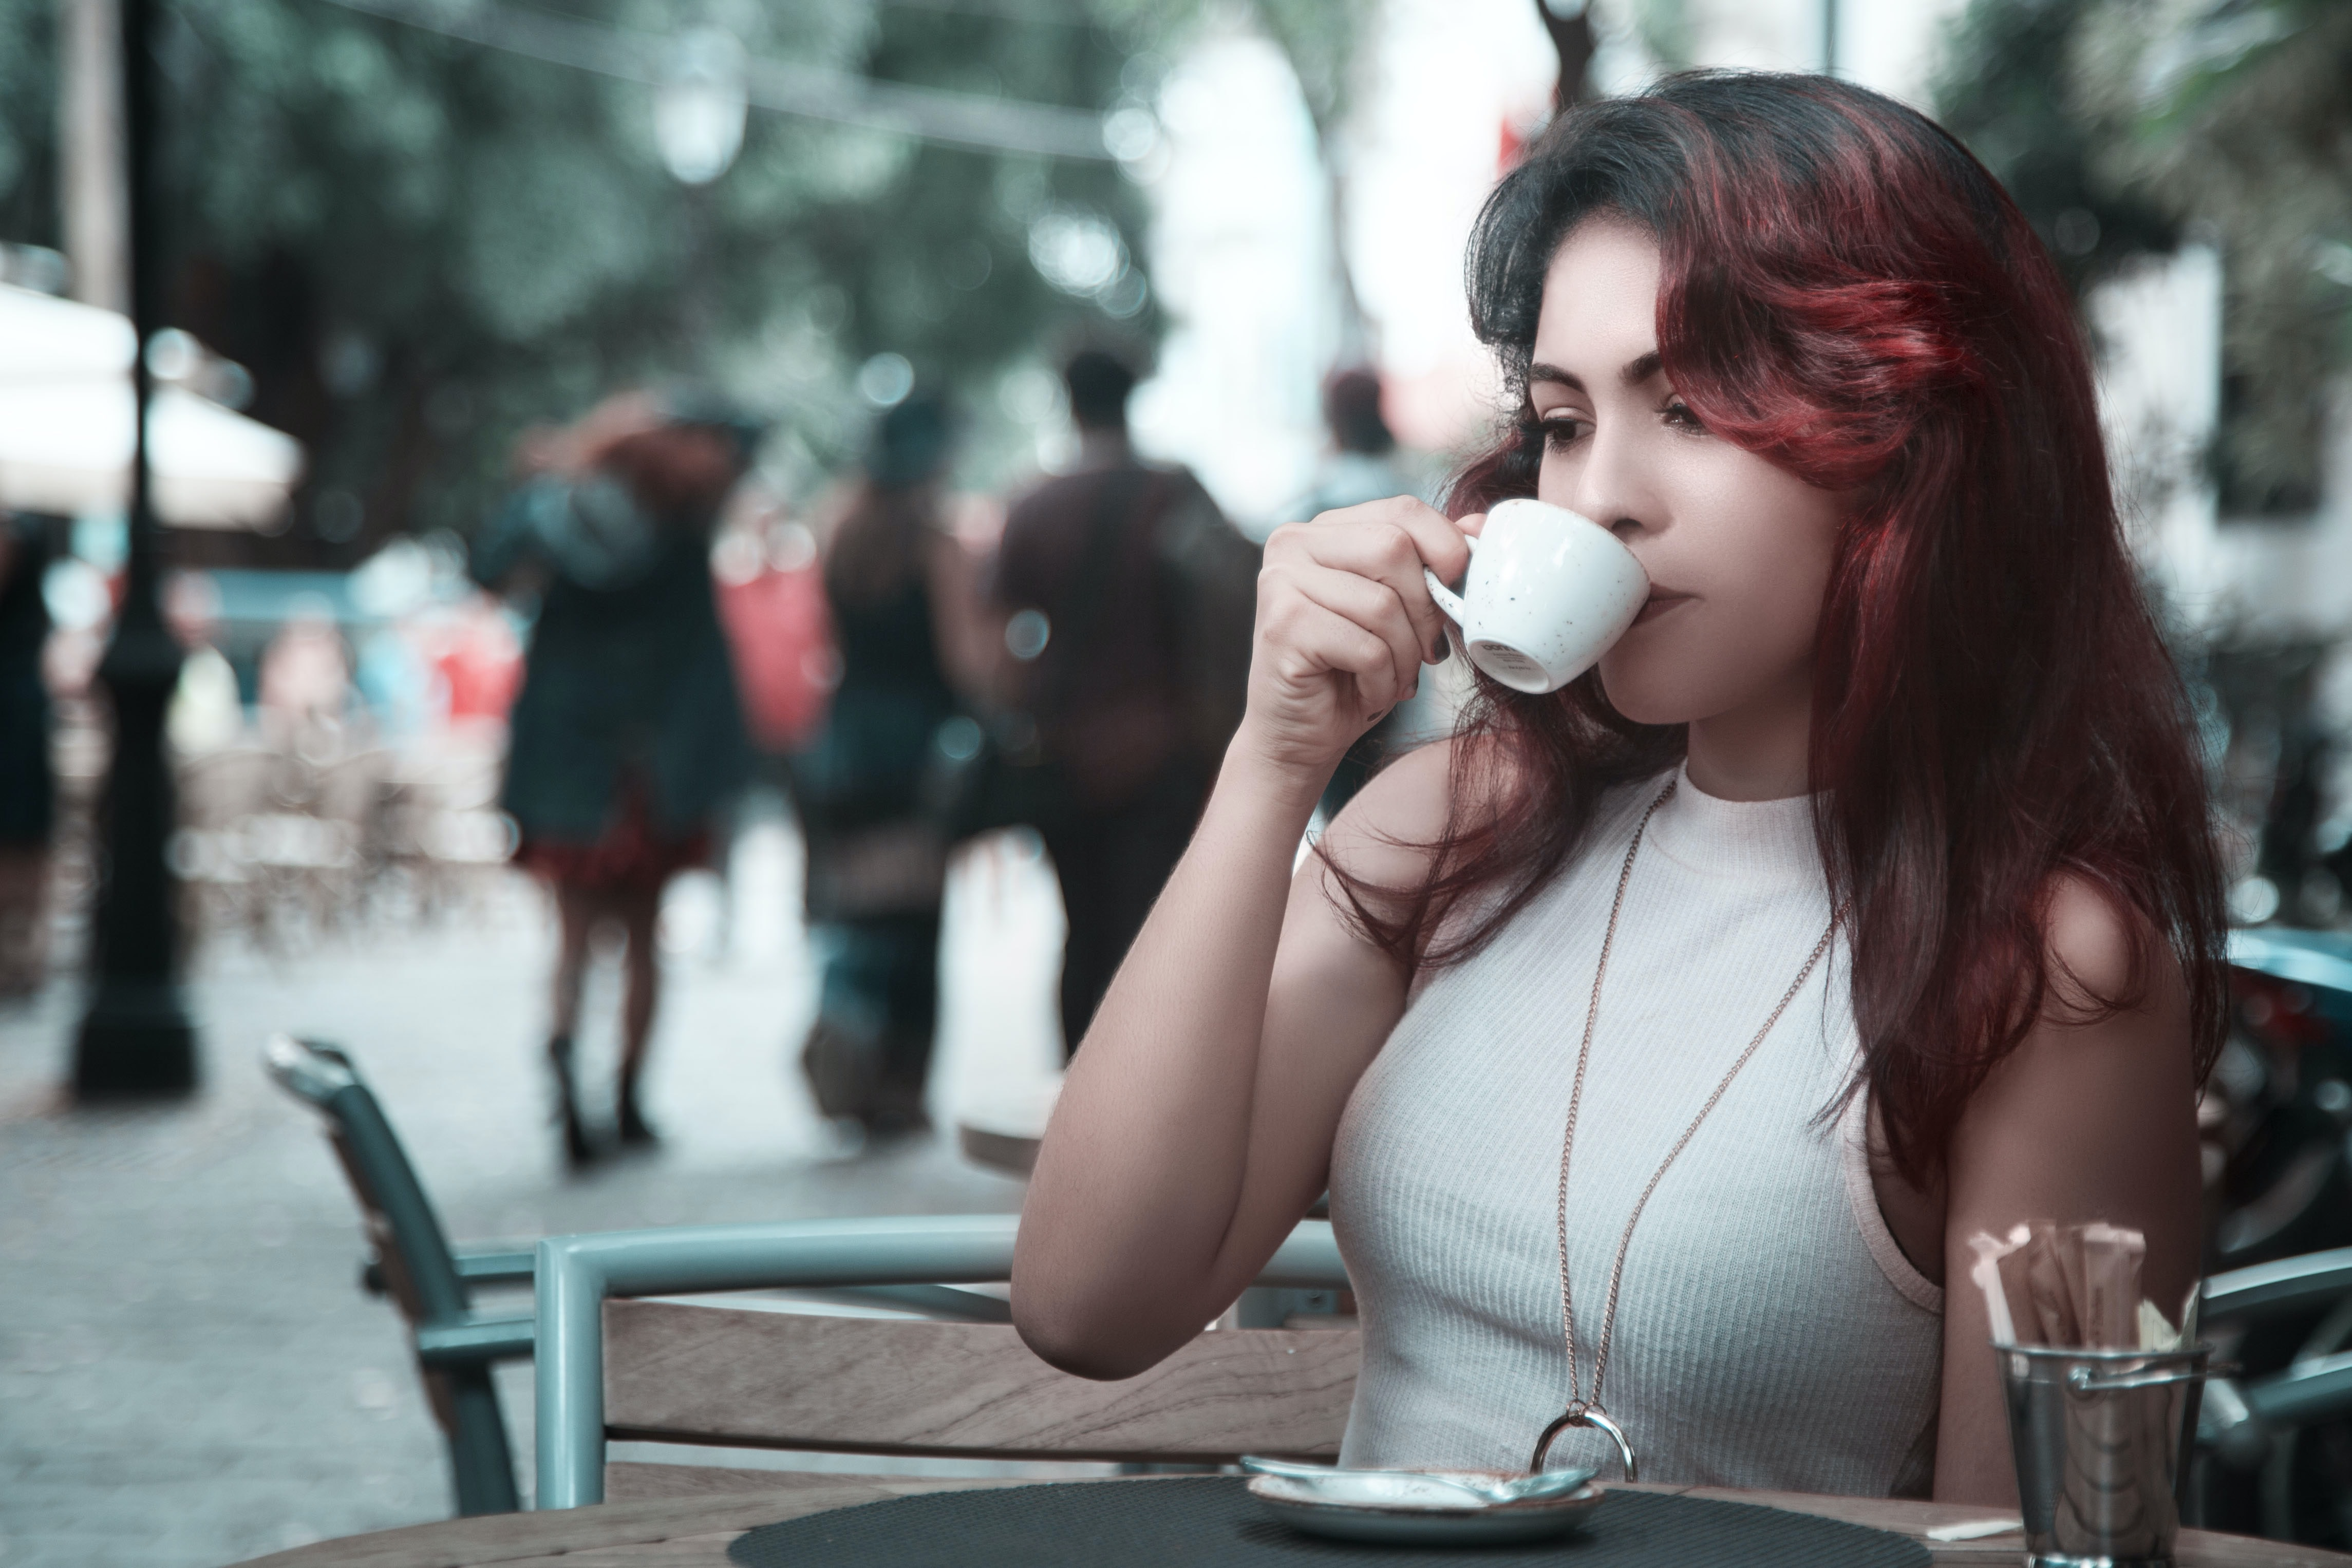 A woman with dyed red hair sips from a teacup at an outdoor cafe table